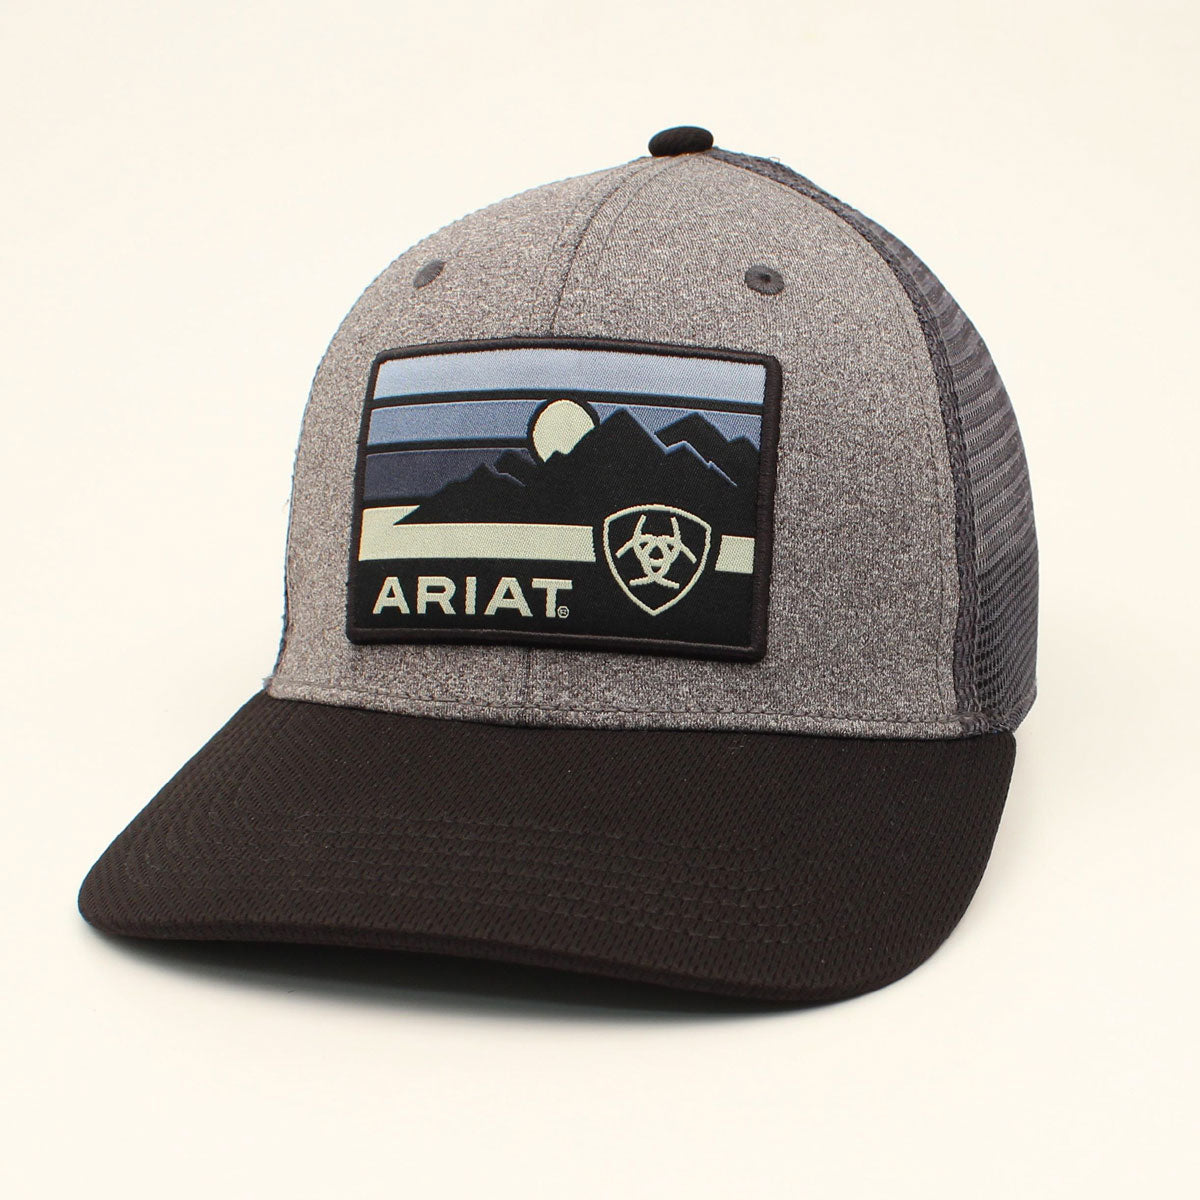 Ariat Logo Patch with Sunset Cap